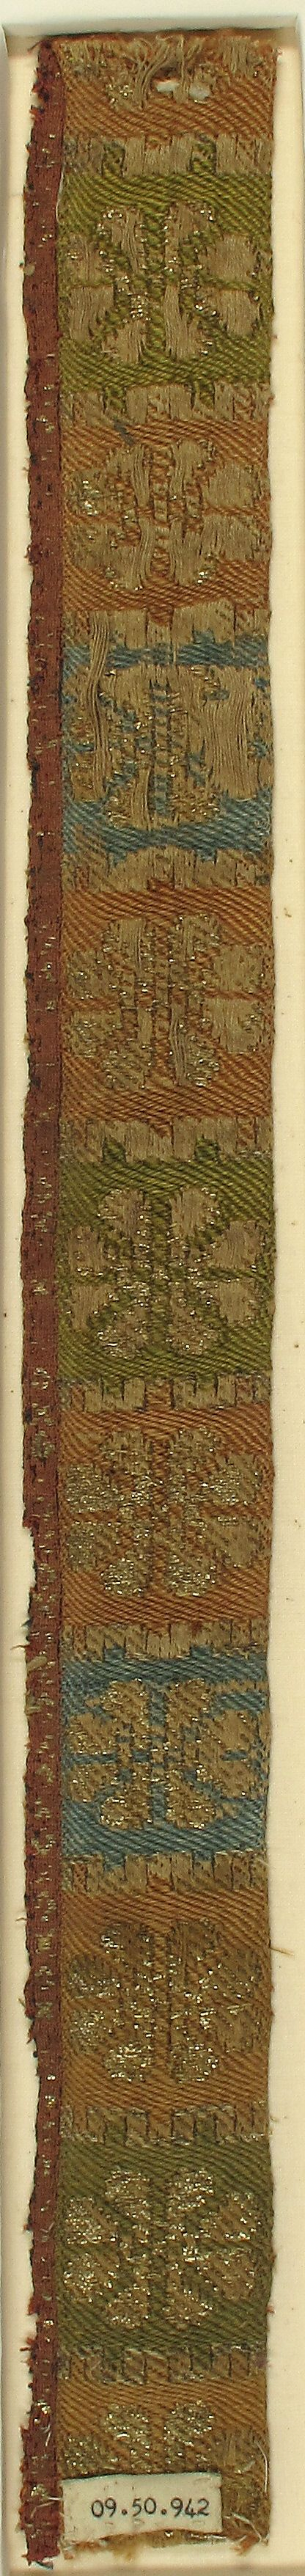 Brocade Textile Date: 15th century Geography: Made in Cologne, Germany Culture: German Medium: Silk, linen, metal thread Accession Number: 09.50.942